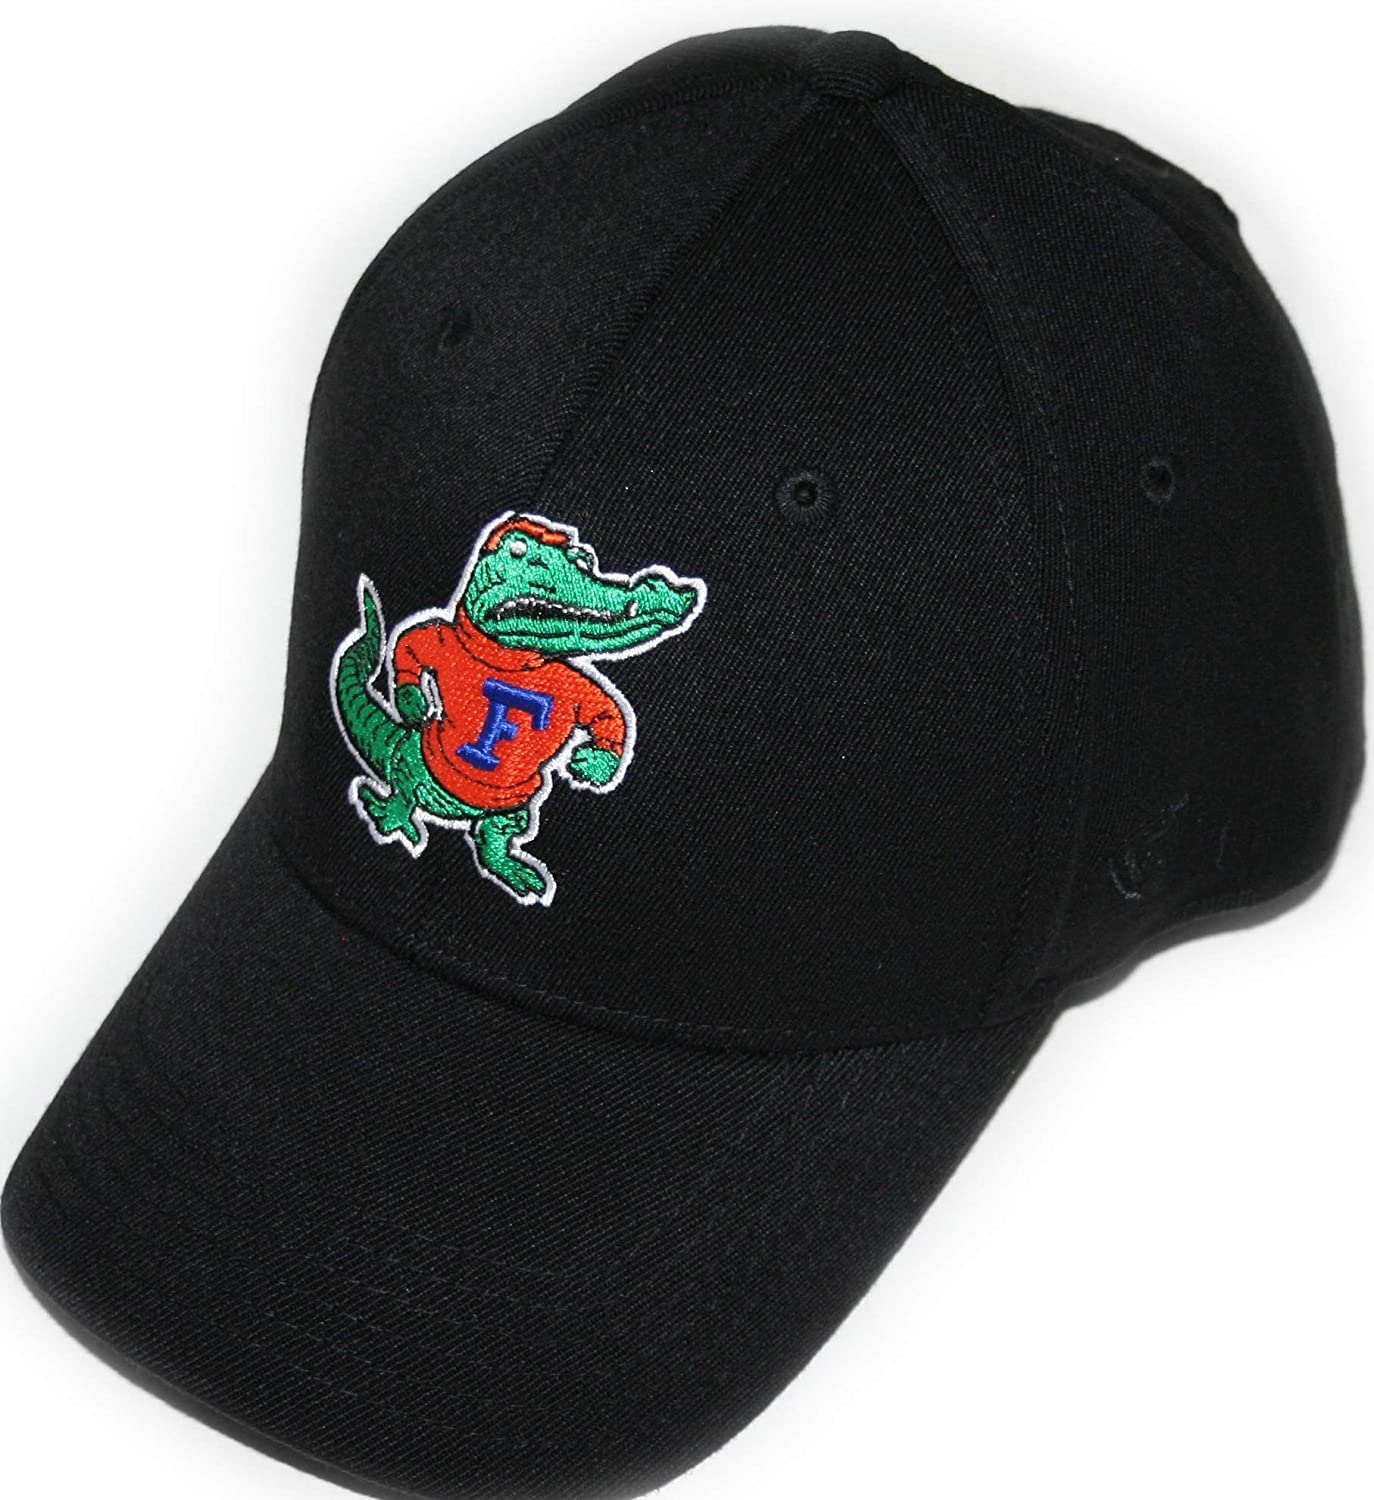 Campus Hats University of Florida Gators FLA Black DHS Limited Vintage Gator Mens/Womens Fitted Baseball Hat/Cap Size Large XL 7 1/2, 7 5/8, 7 7/8